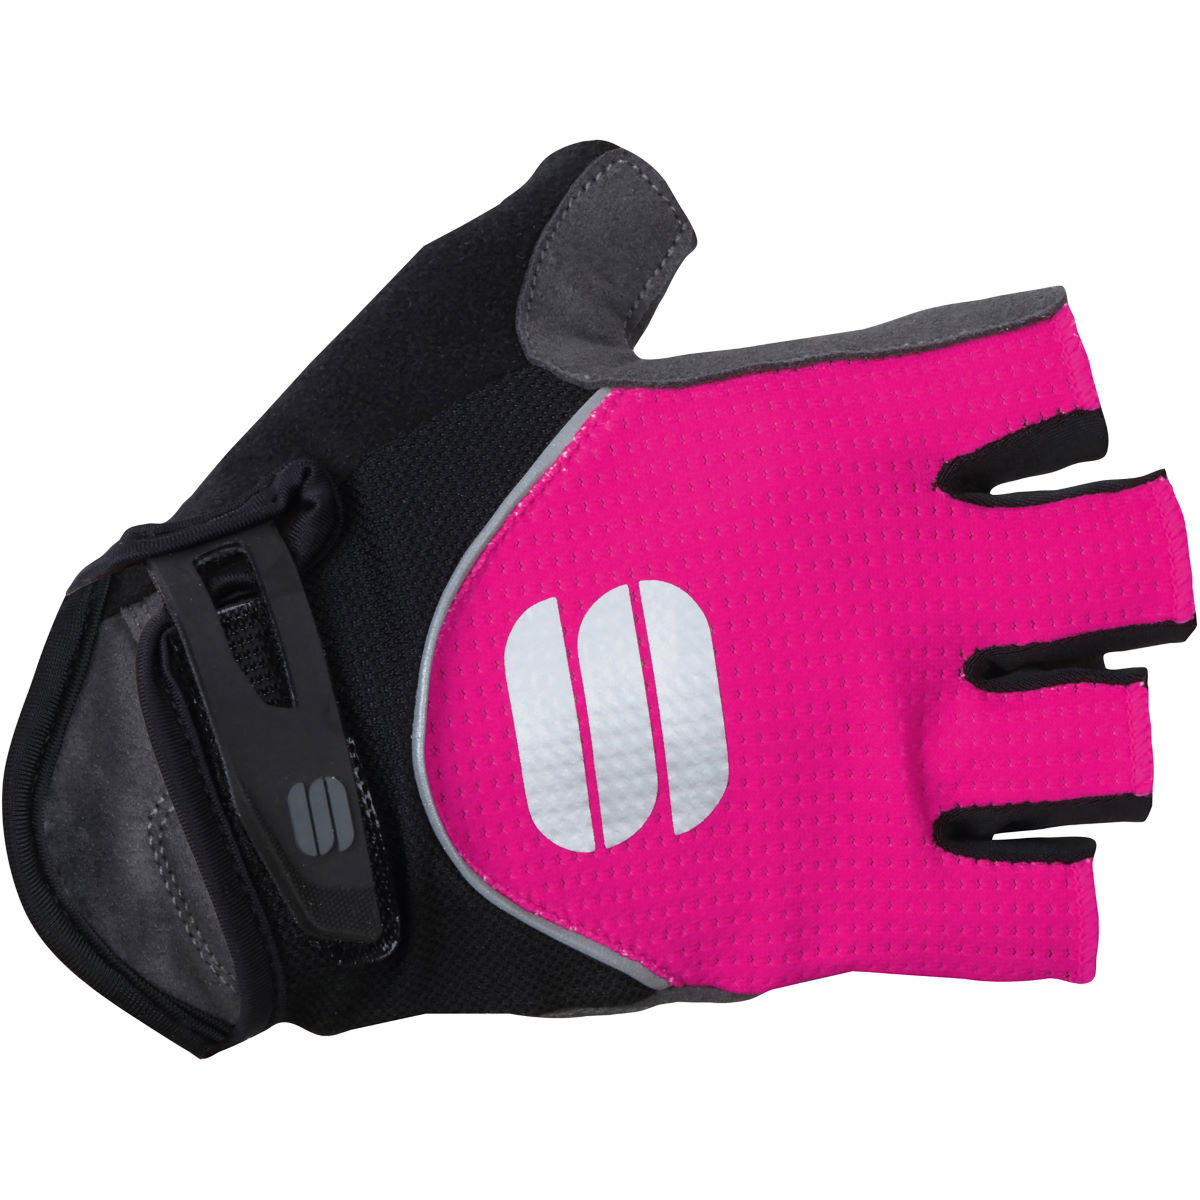 Sportful Womens Neo Cycling Gloves - Xl Pink/black  Gloves